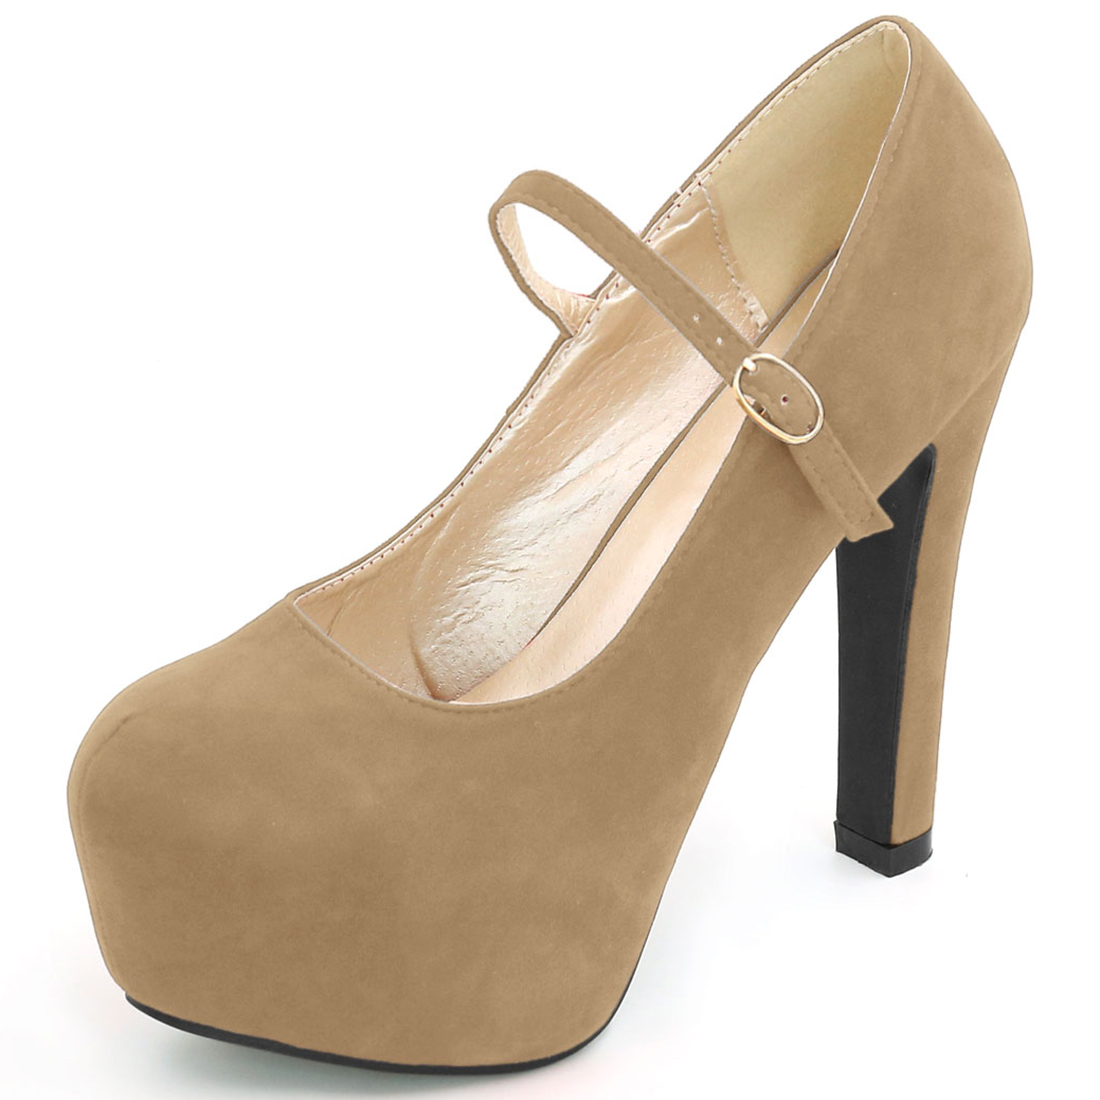 Woman Rounded Toe Chunky Platform Buckle Strap Pumps Dark Beige US 8